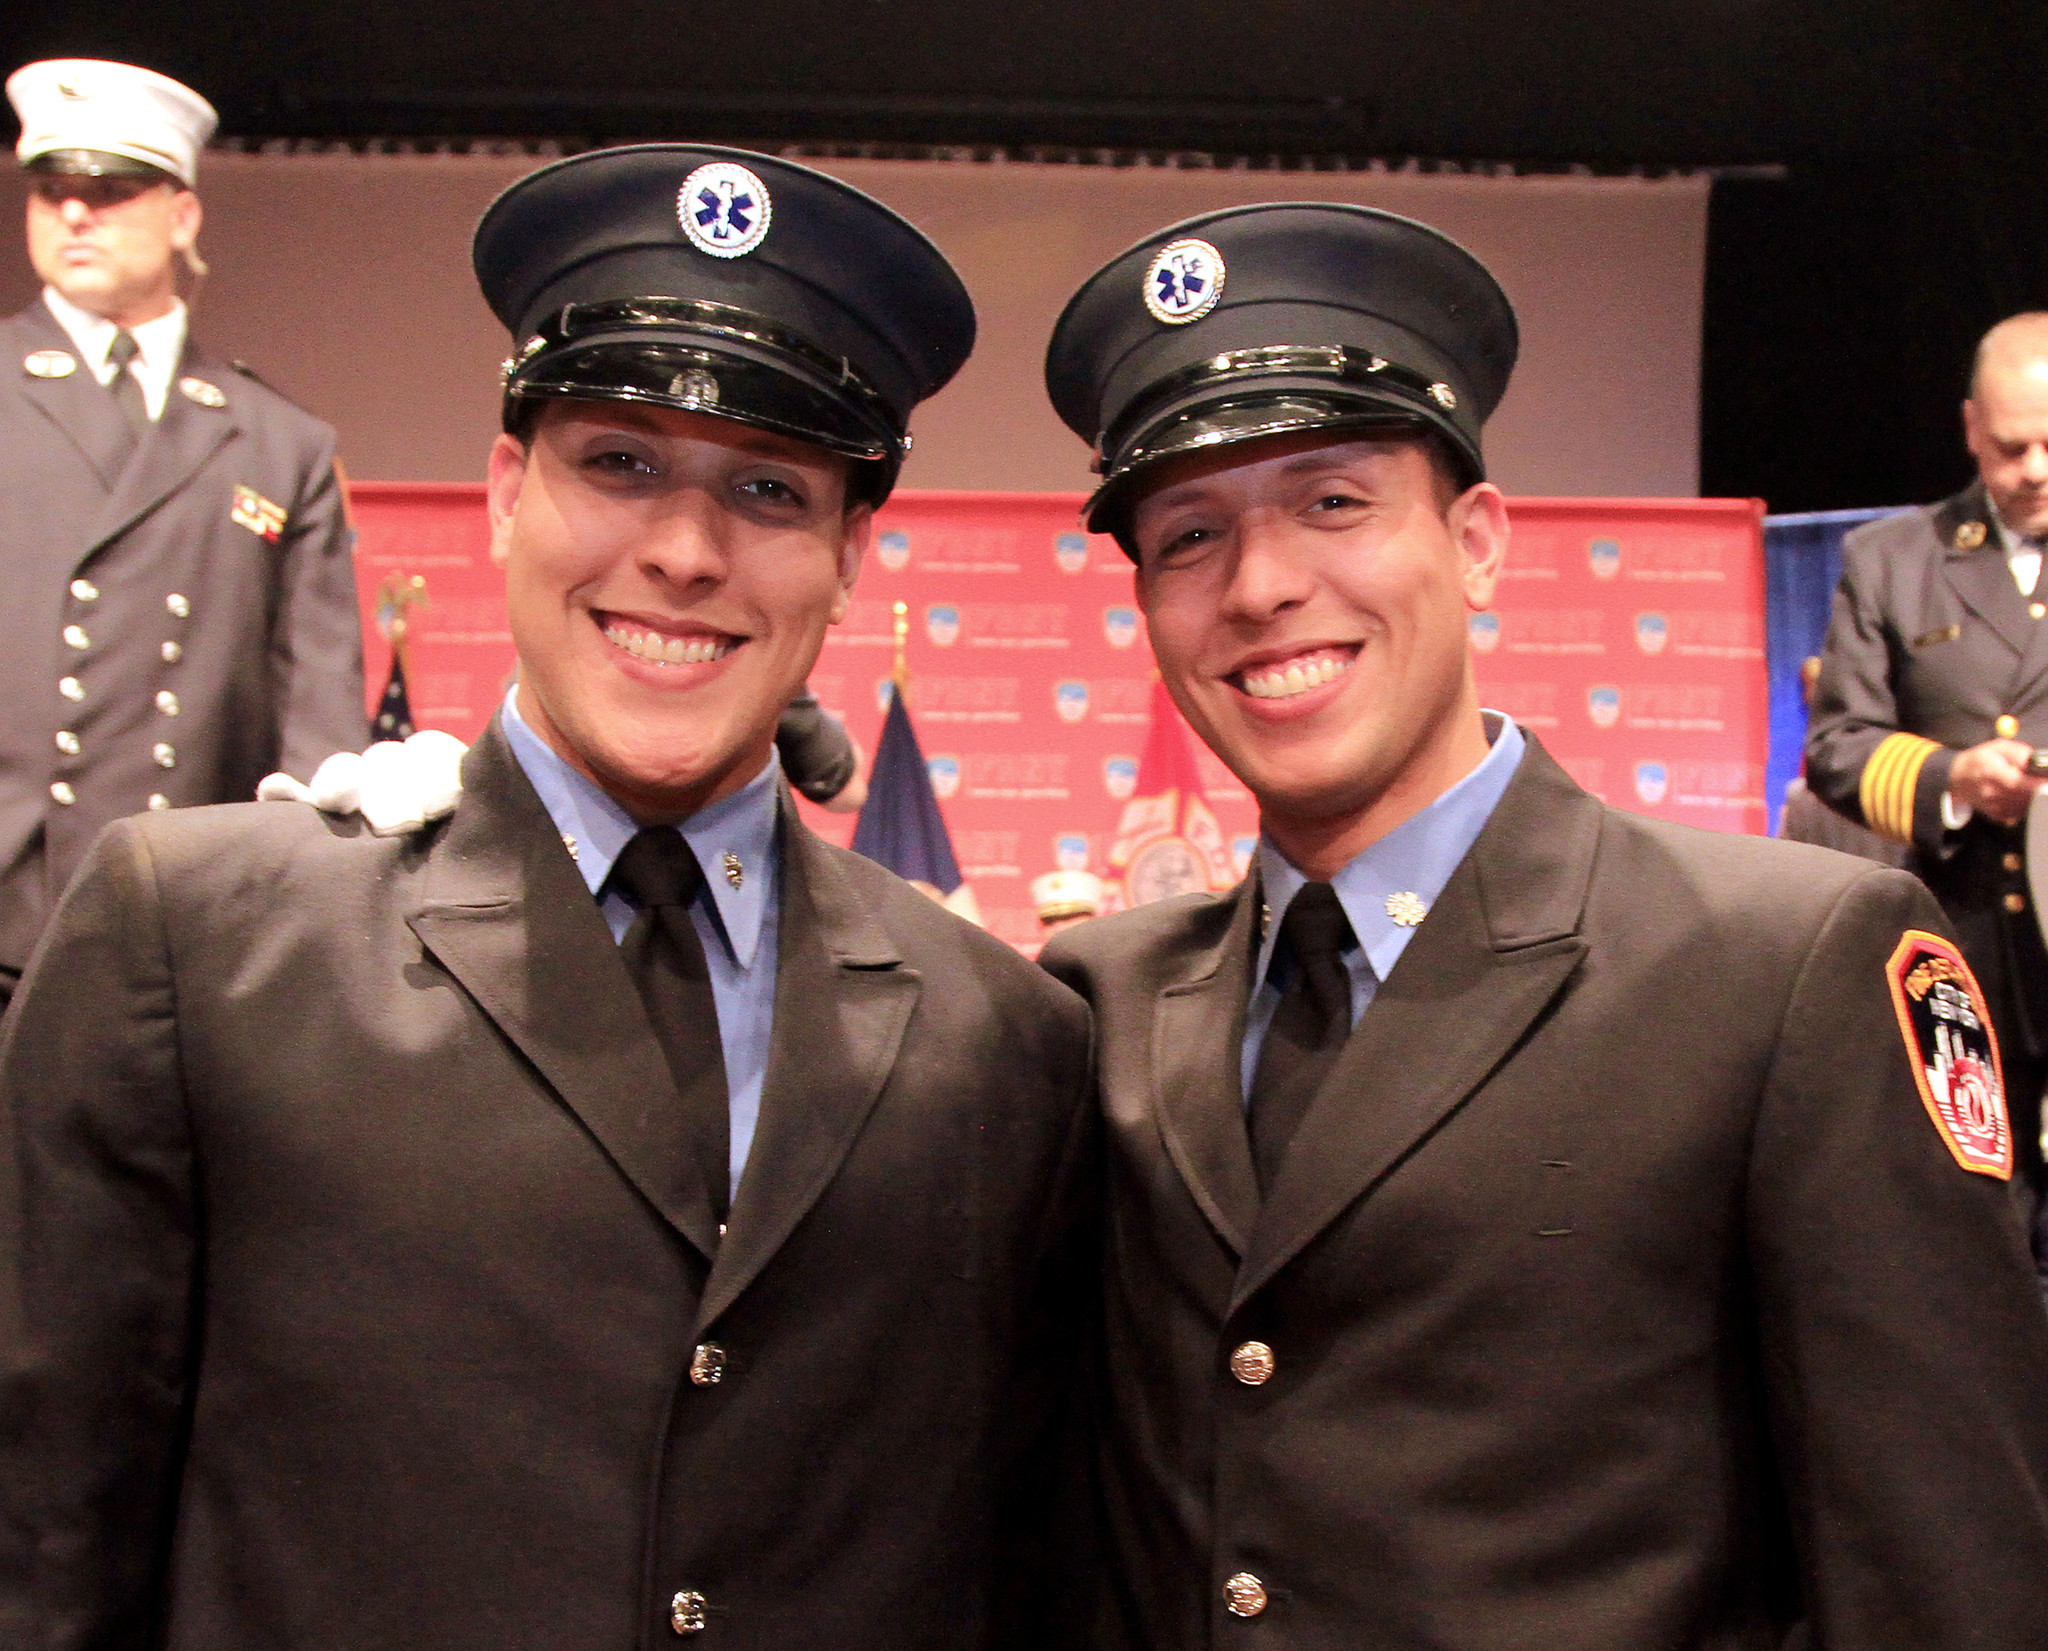 Double duty: Twin brothers among newest FDNY EMS lifesavers